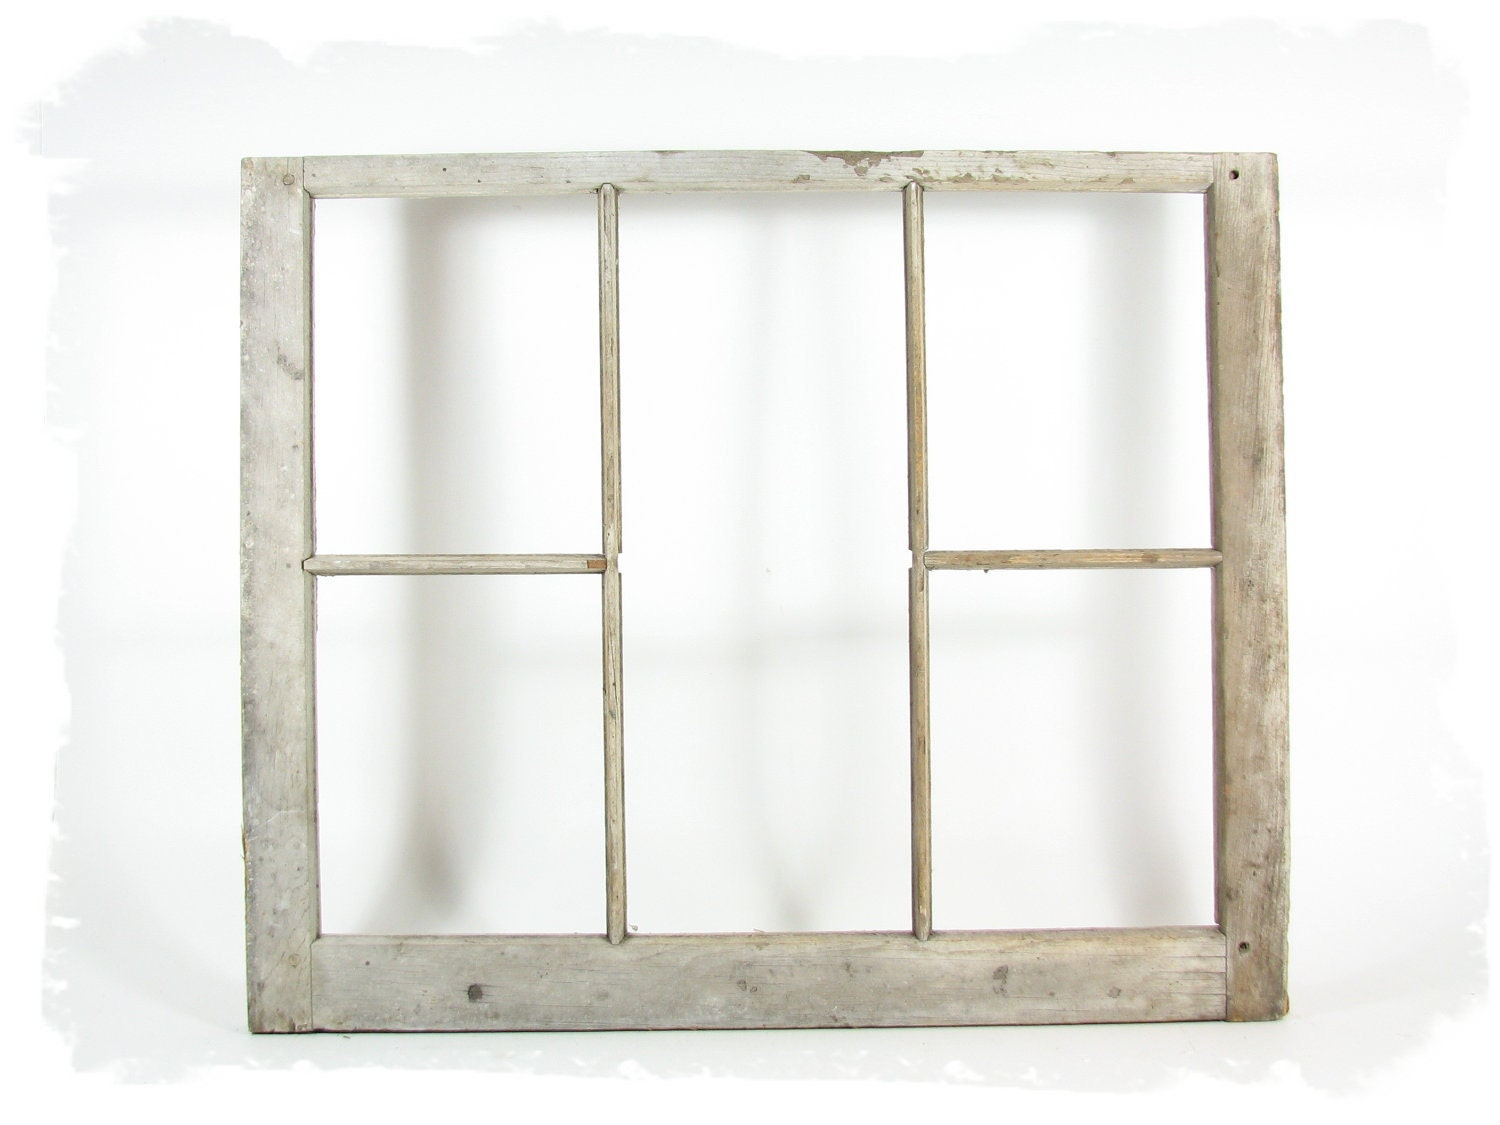 Vintage wood window frame 5 pane without glass by for Wooden windows